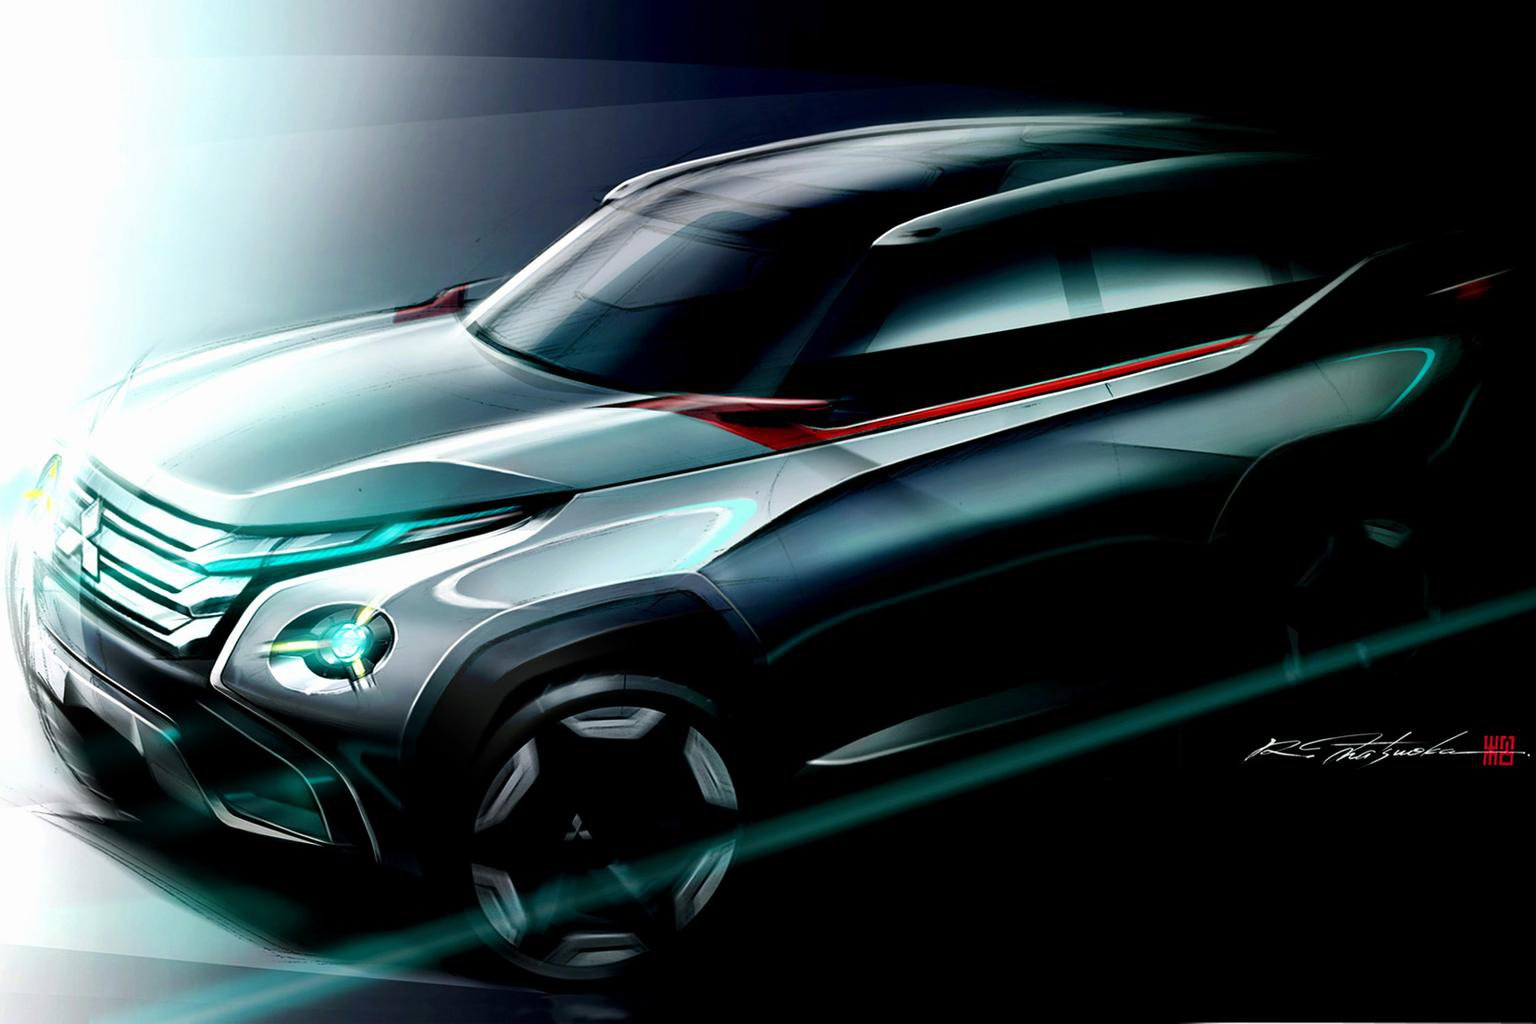 Mitsubishi concepts hint at next-gen models